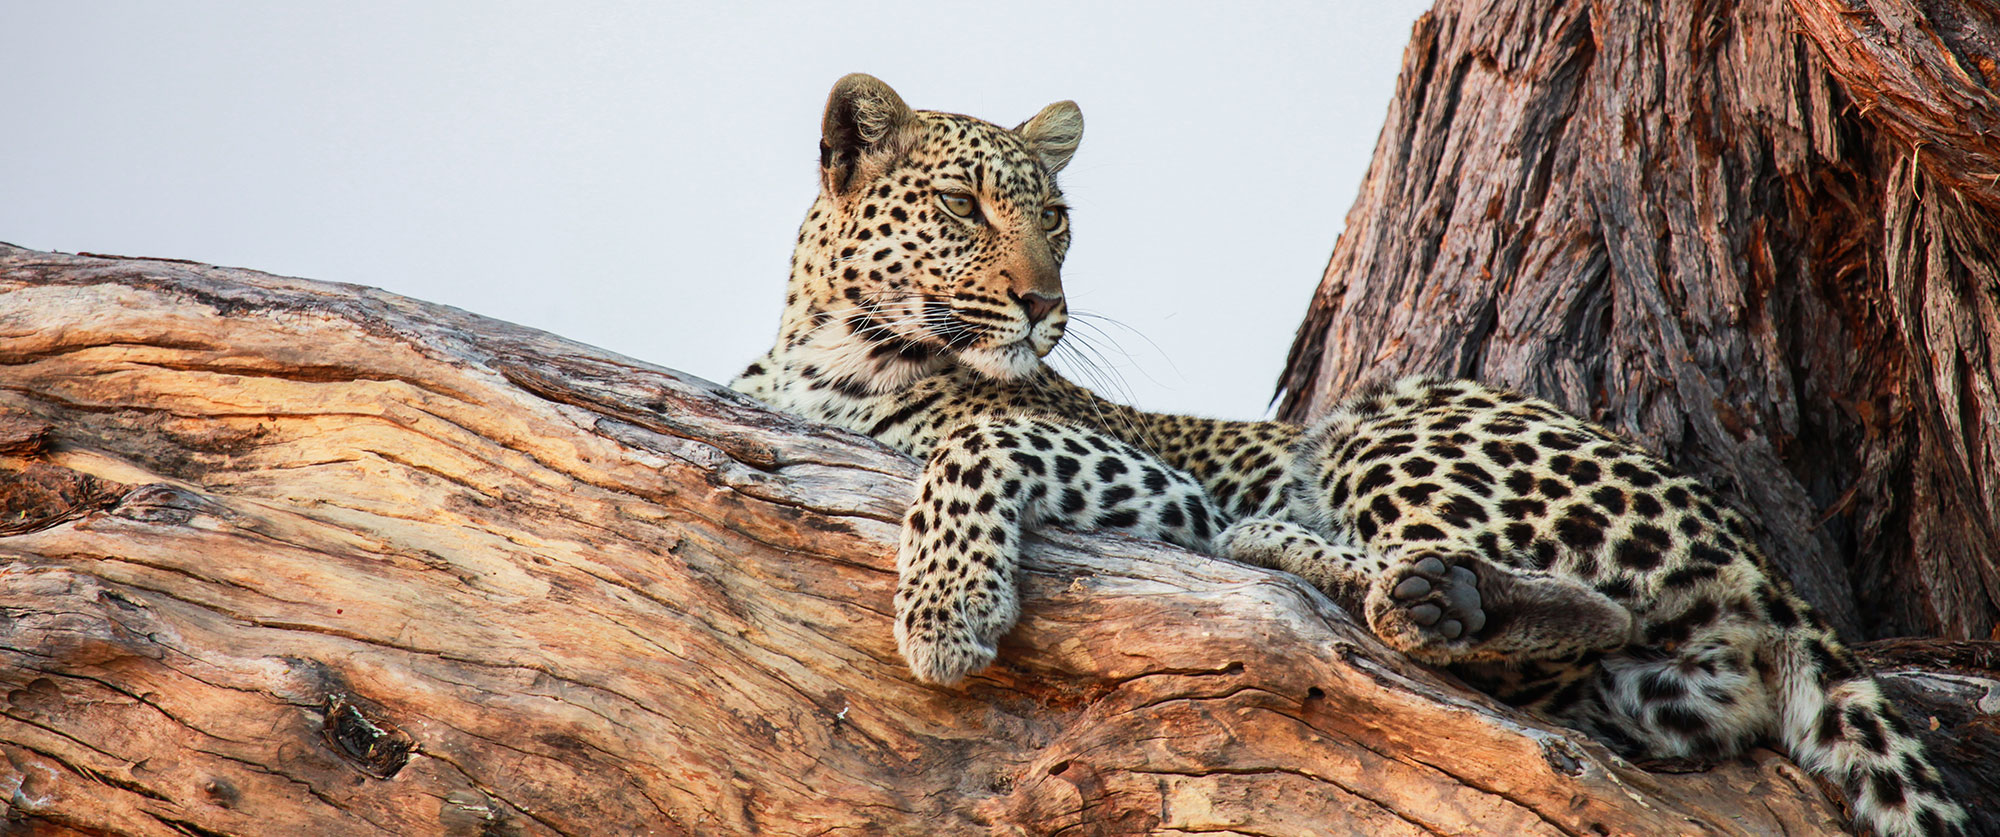 Botswana Safari Tour: Peak Season Okavango Adventure - Leopard in Tree